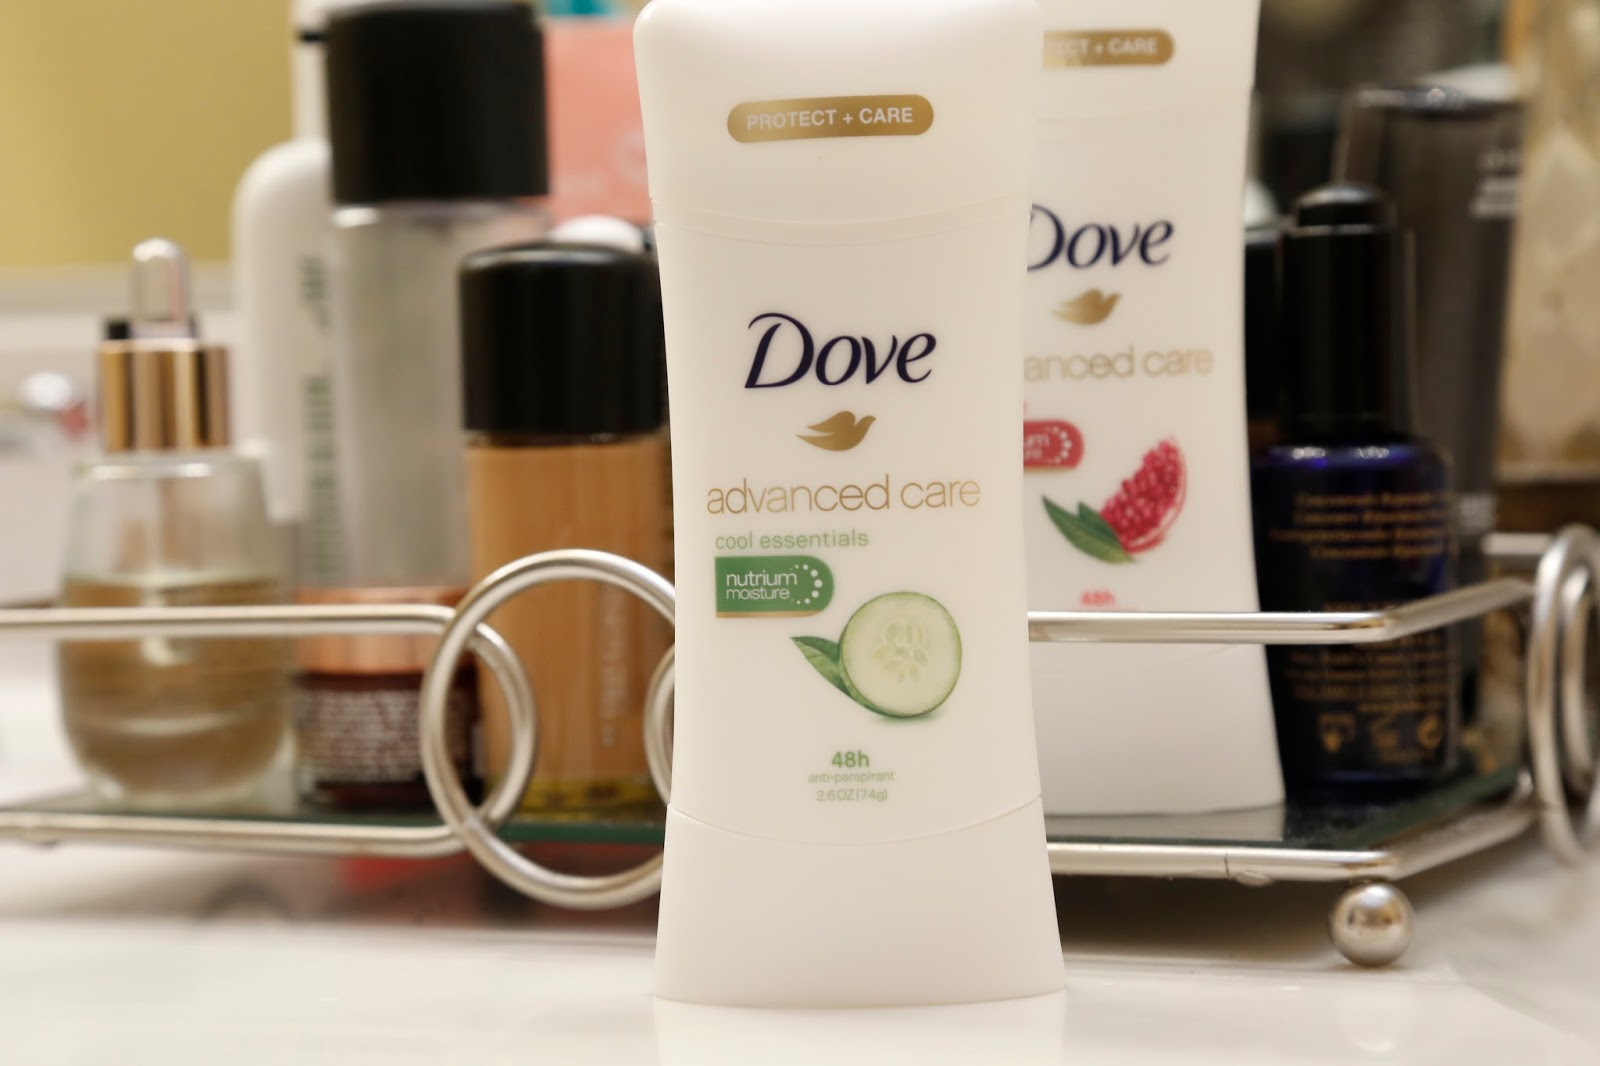 Dove Advanced Care Antiperspirant, www.jadore-fashion.com